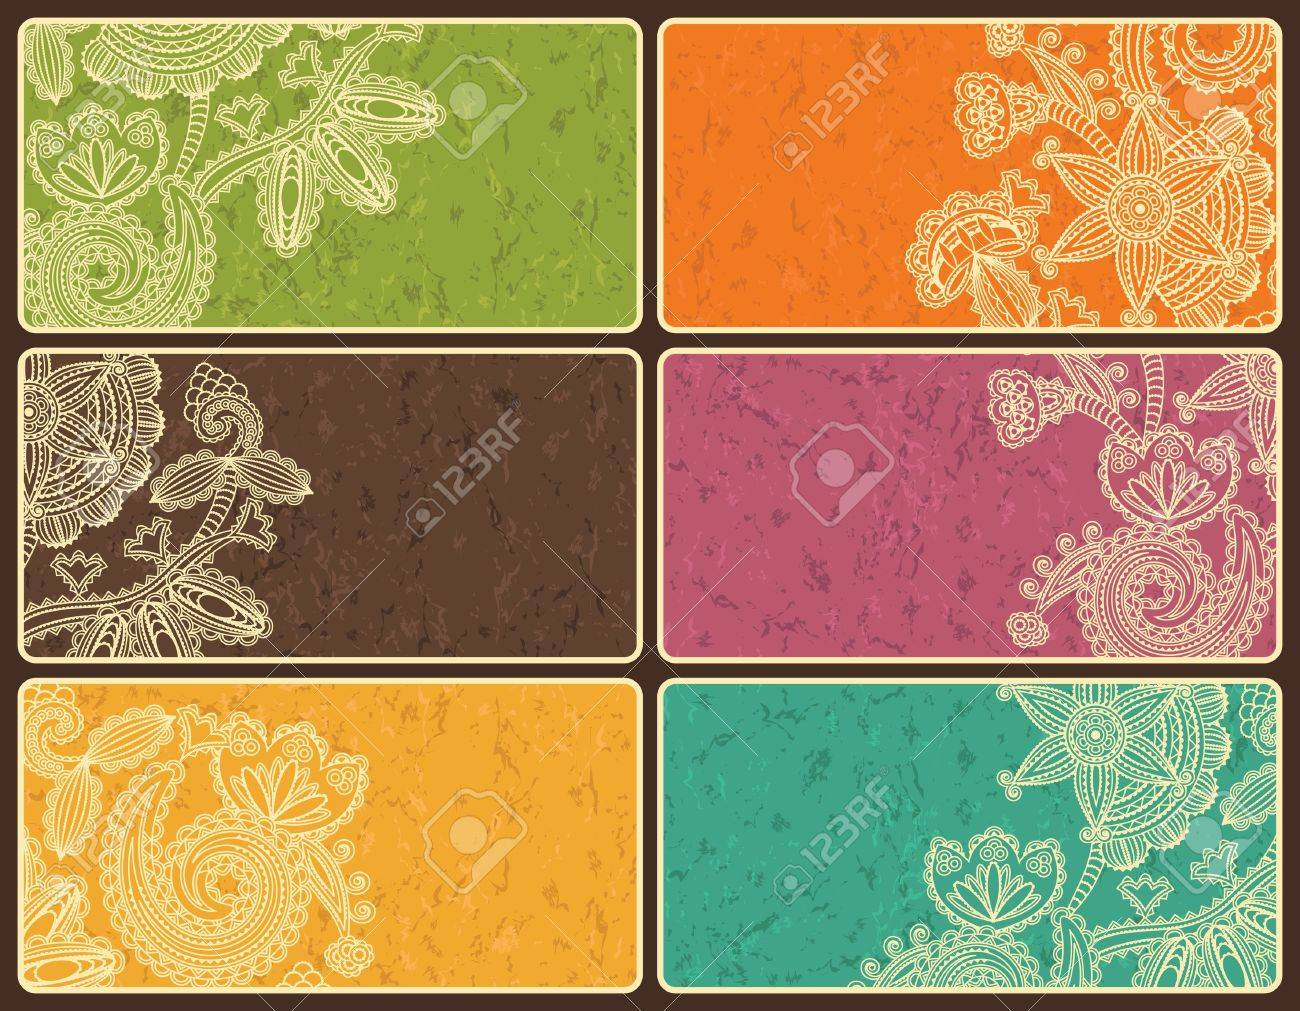 Set of business cards with abstract floral pattern and grunge background in bright colors Stock Vector - 14256793